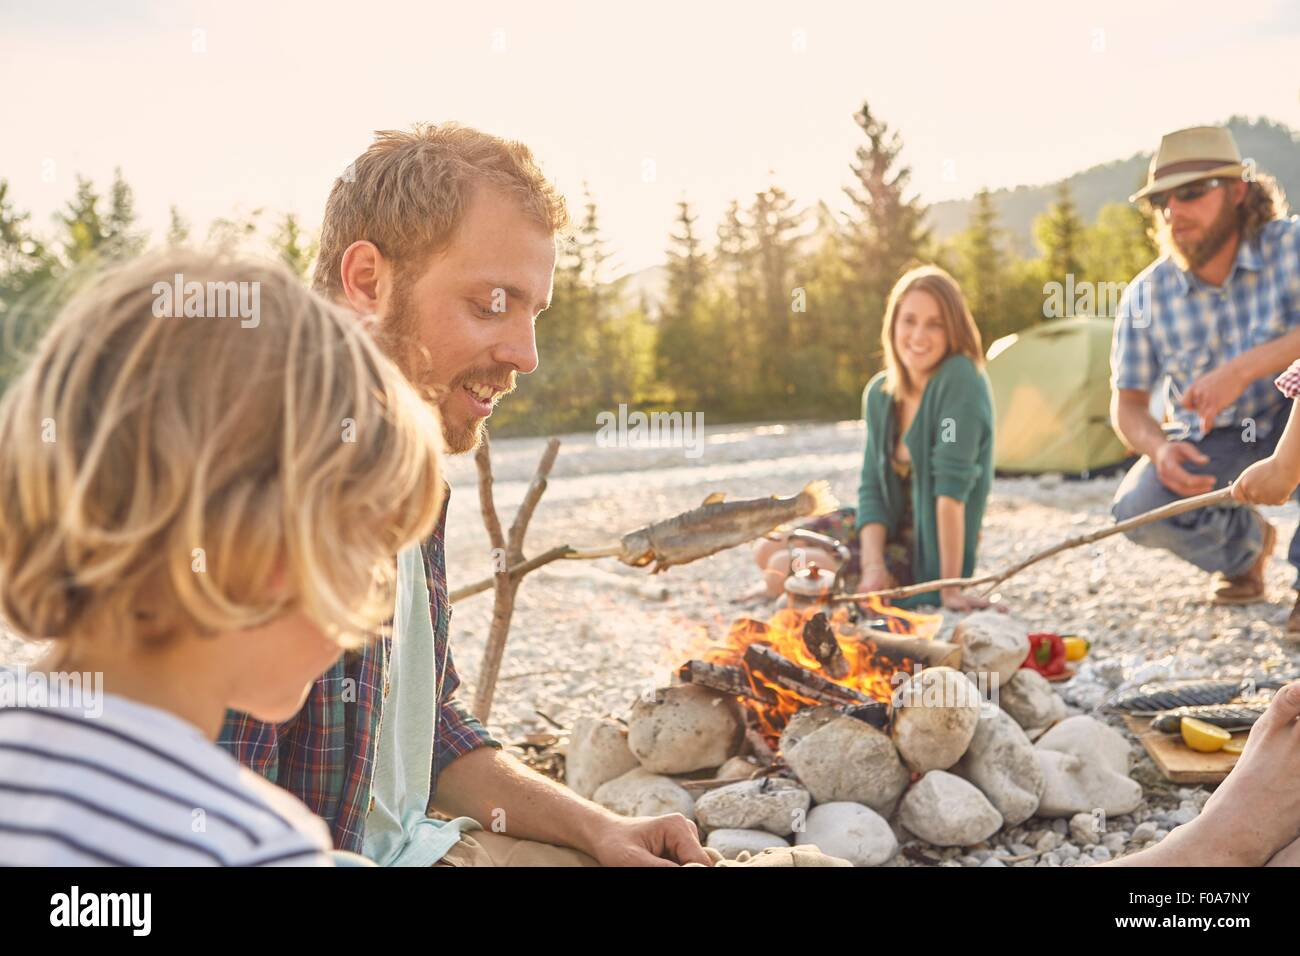 Family sitting around campfire cooking fish attached to branch - Stock Image